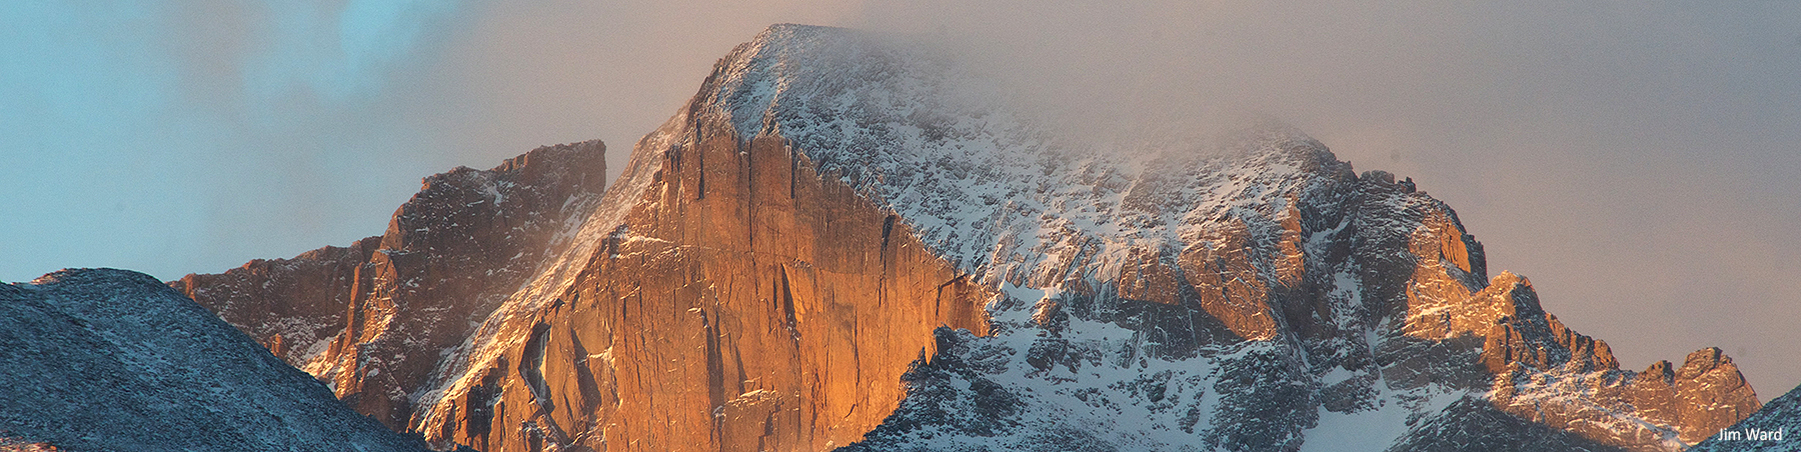 Longs Peak snow morning J Ward f